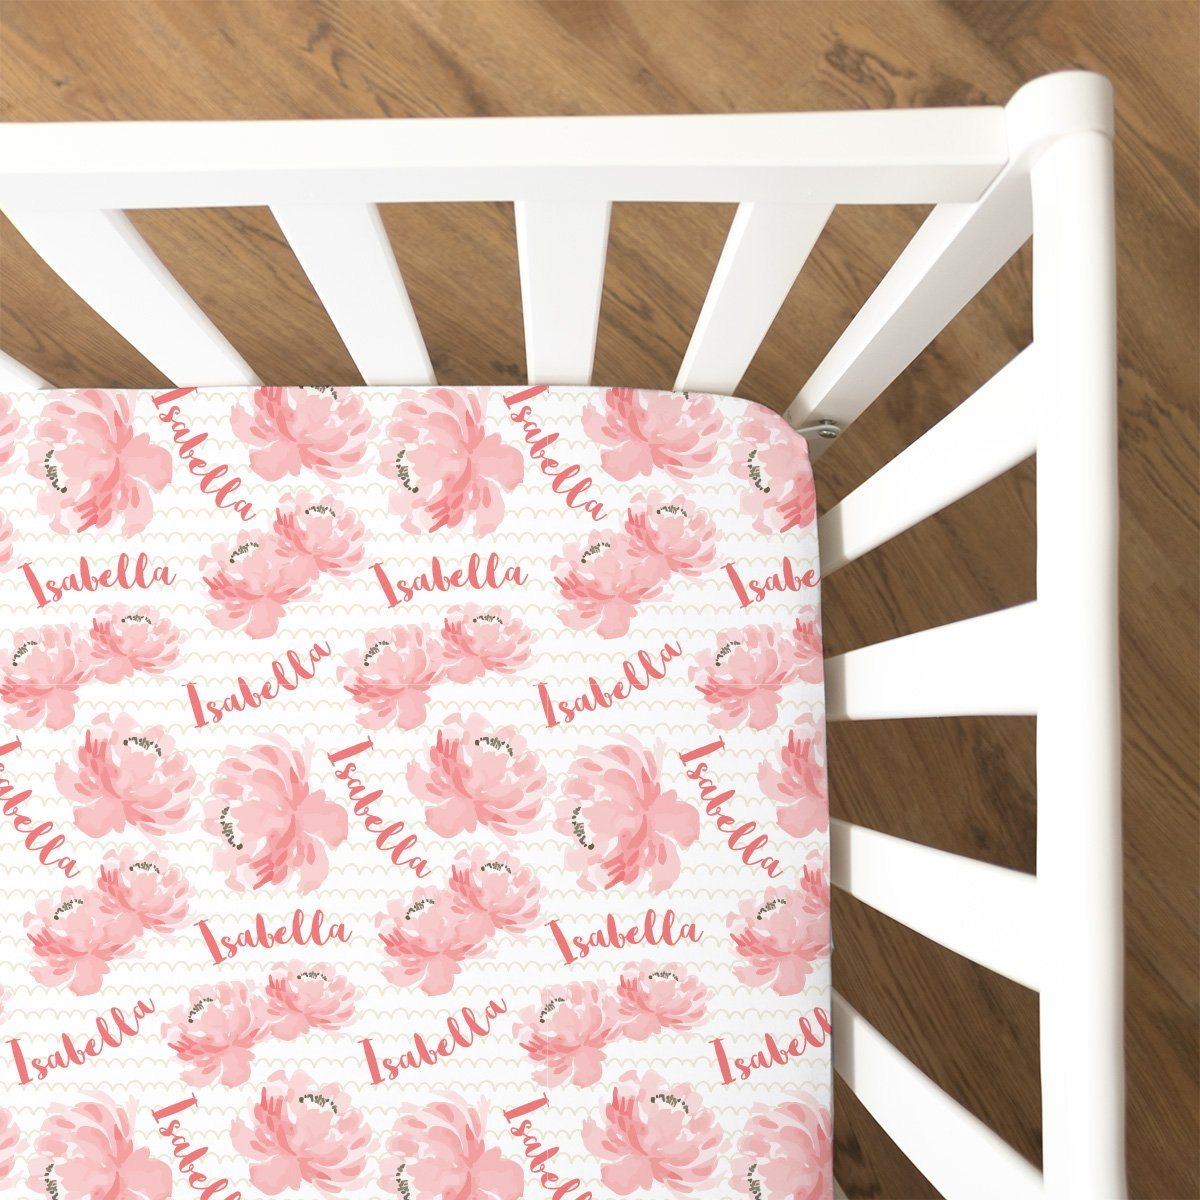 Isabella's Scallops and Peonies | Fitted Crib Sheet